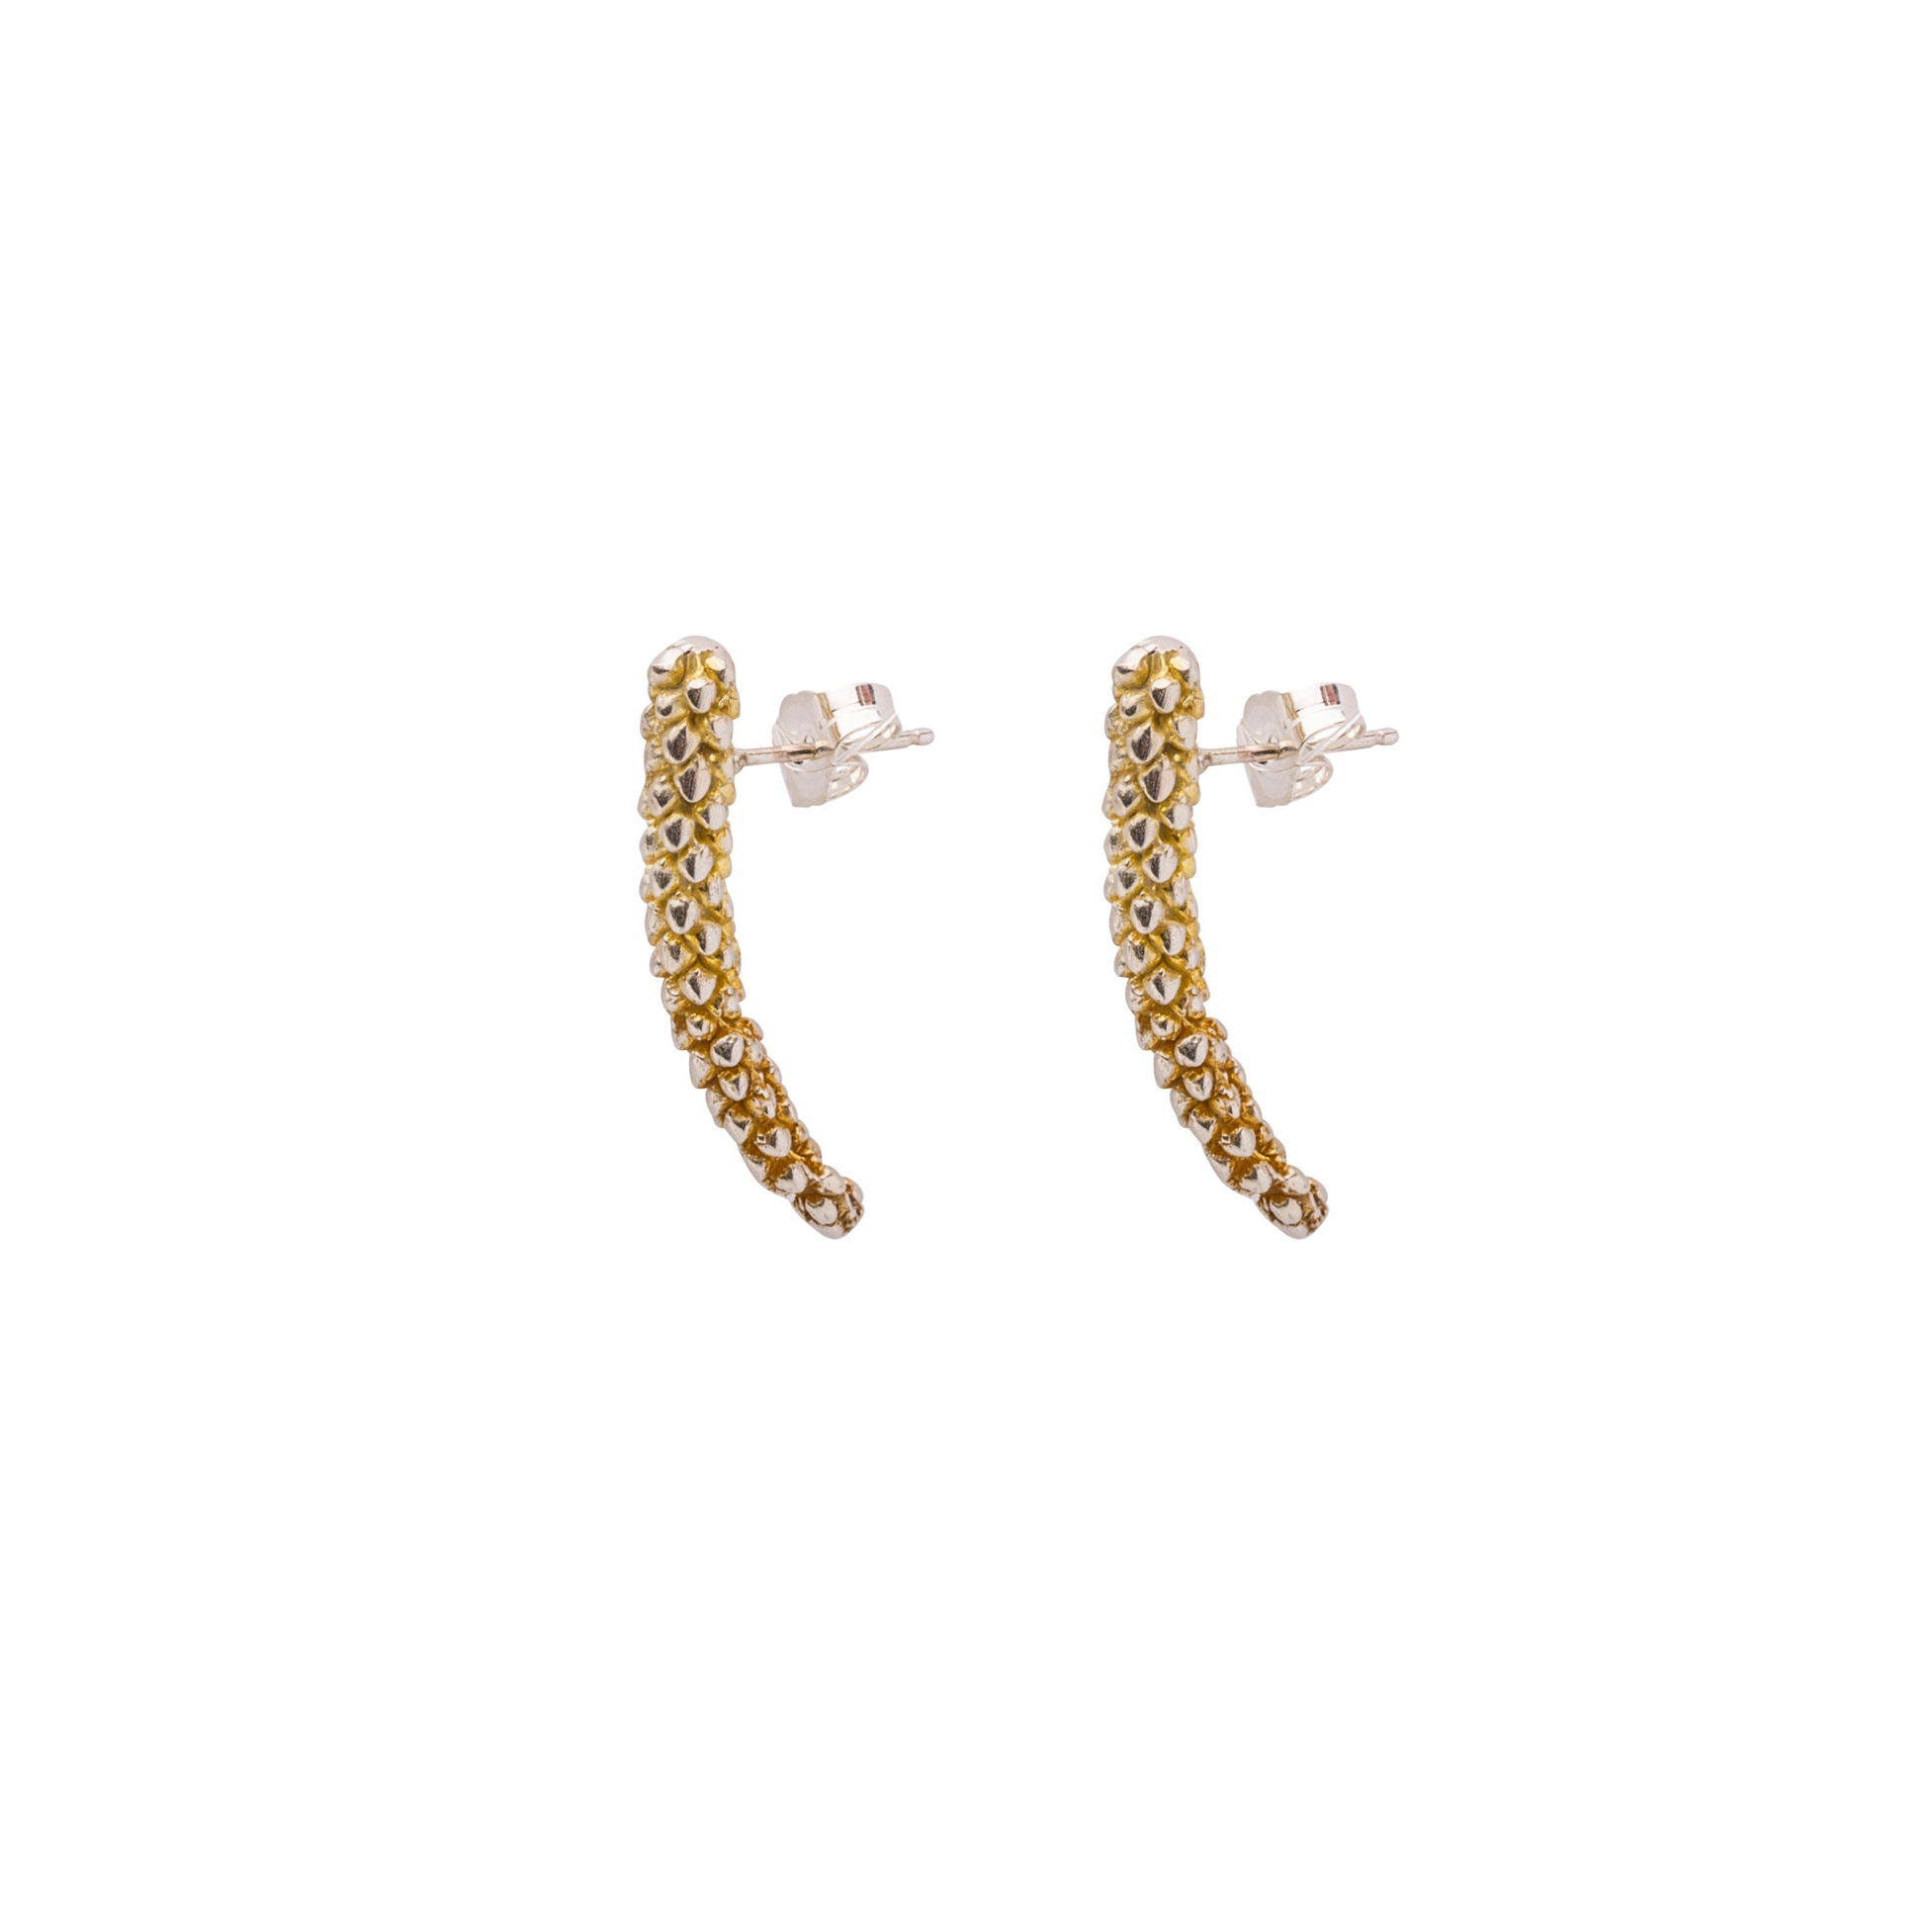 earrings_6269.JPG